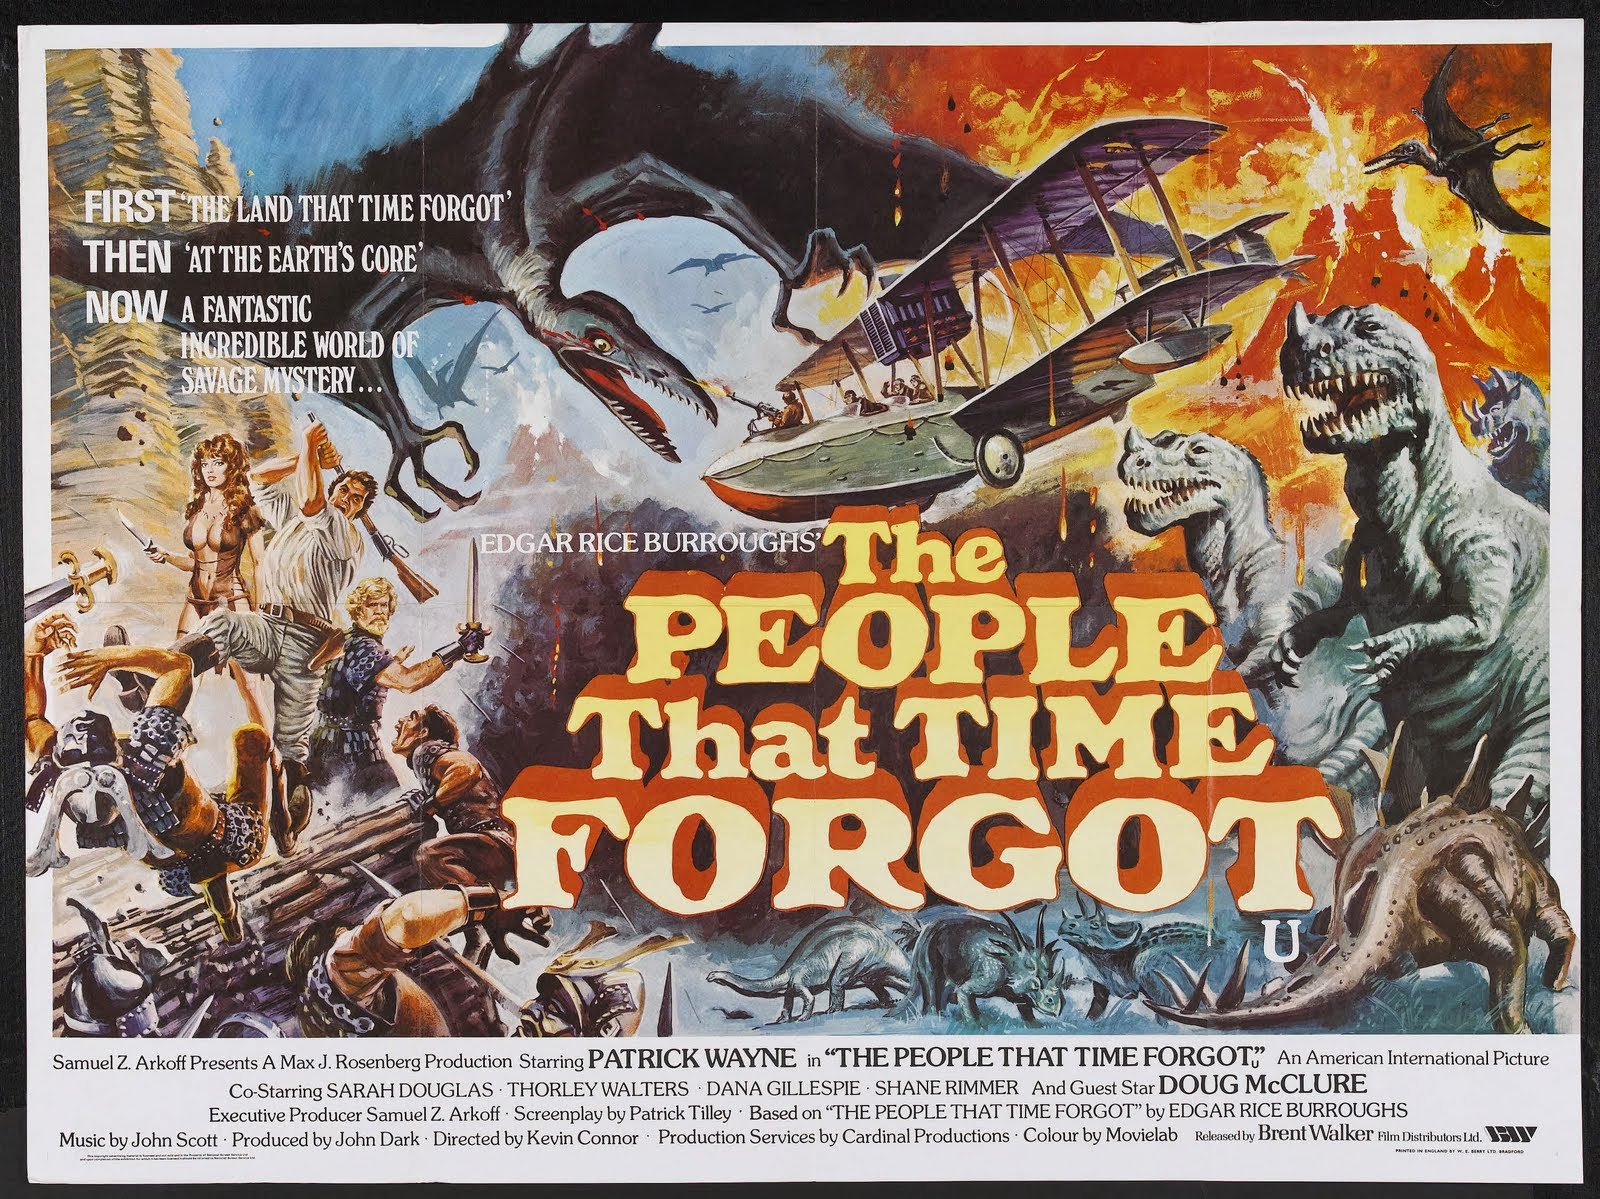 http://wrongsideoftheart.com/2009/03/the-people-that-time-forgot-1977-uk/